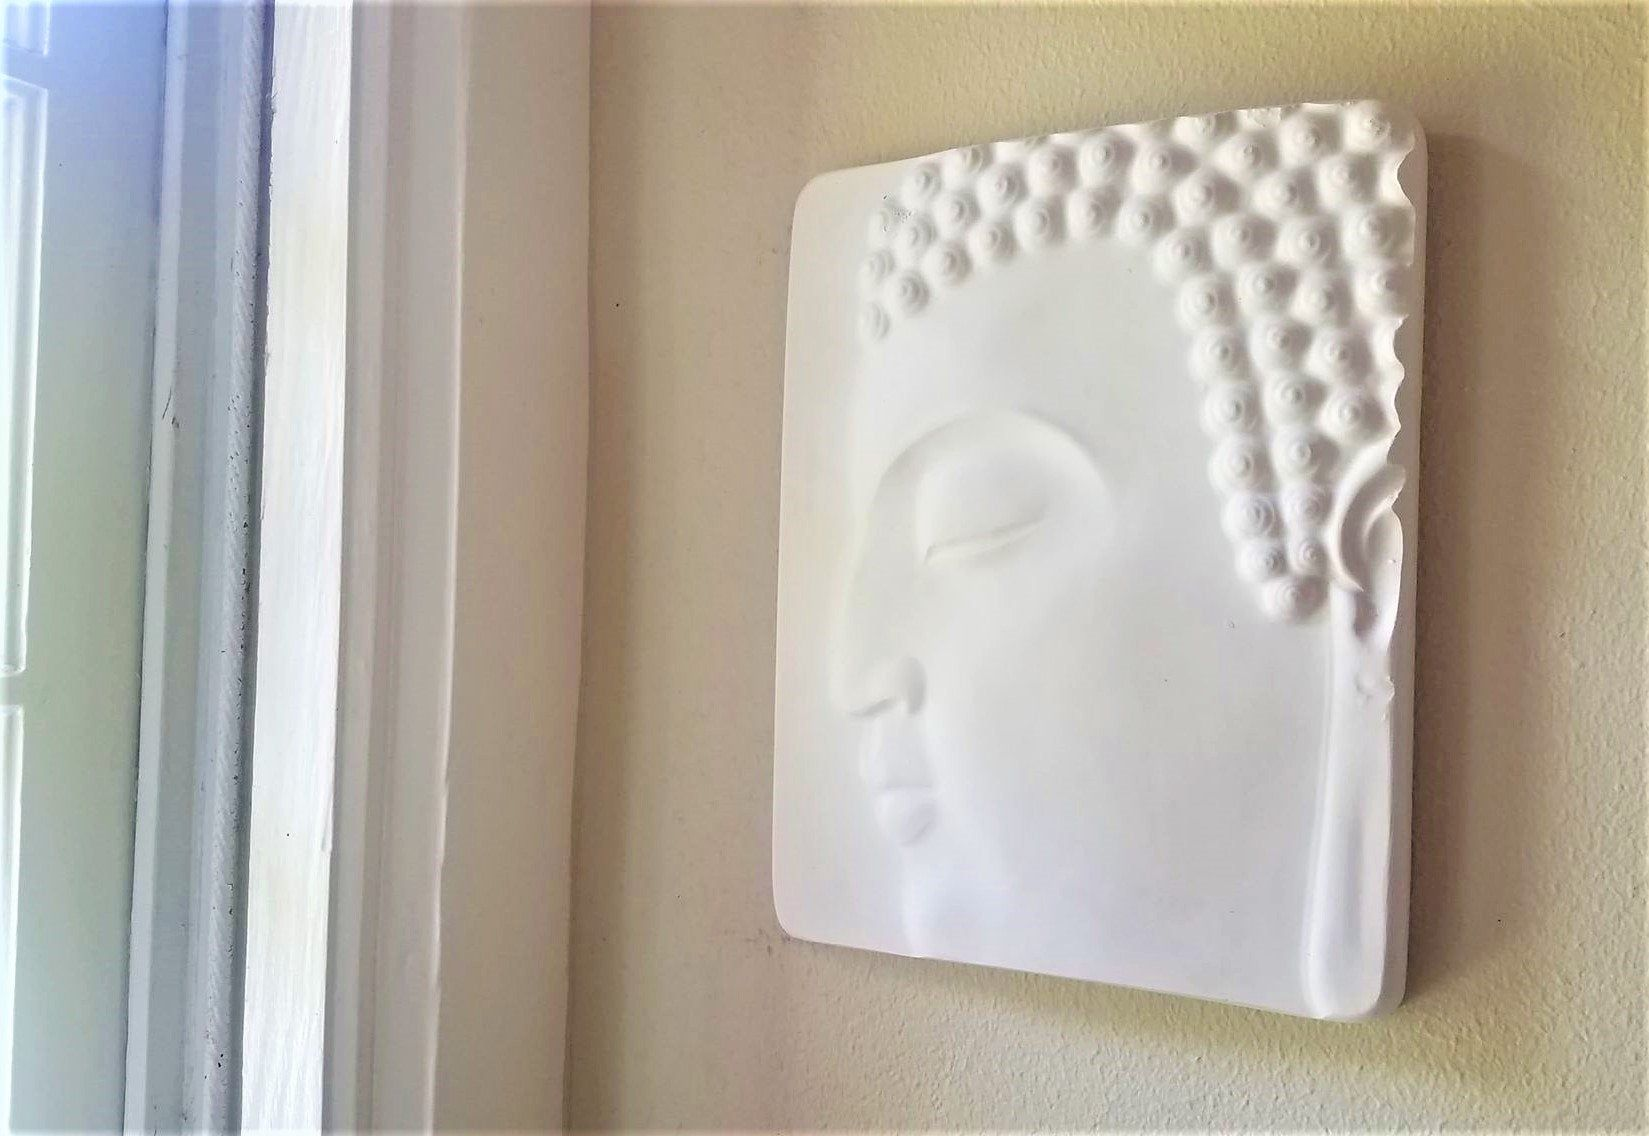 Buddha wall hanging, Buddha plaque, Zen, peaceful Buddha face, matte white home accent, Buddha decor #buddhadecor